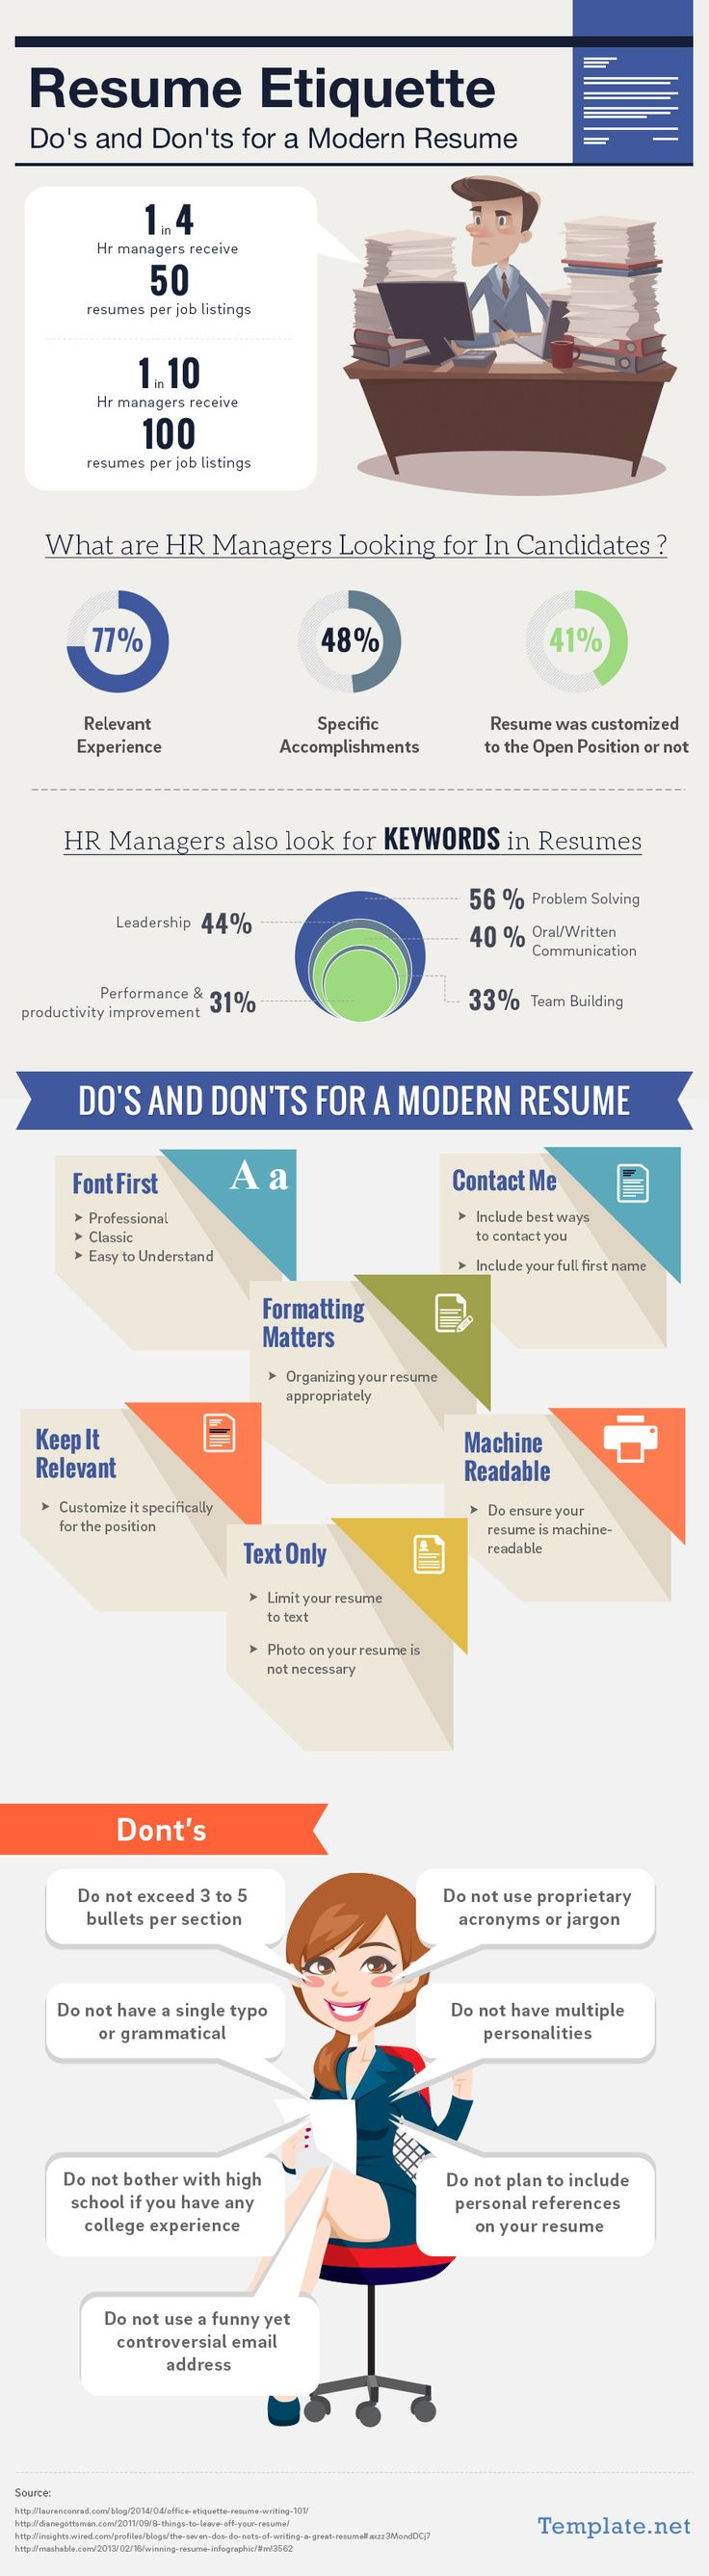 Resume Exaggerating On Resume 63 best images about cover letters and resumes on pinterest resume etiquette dos donts for a modern infographic careers